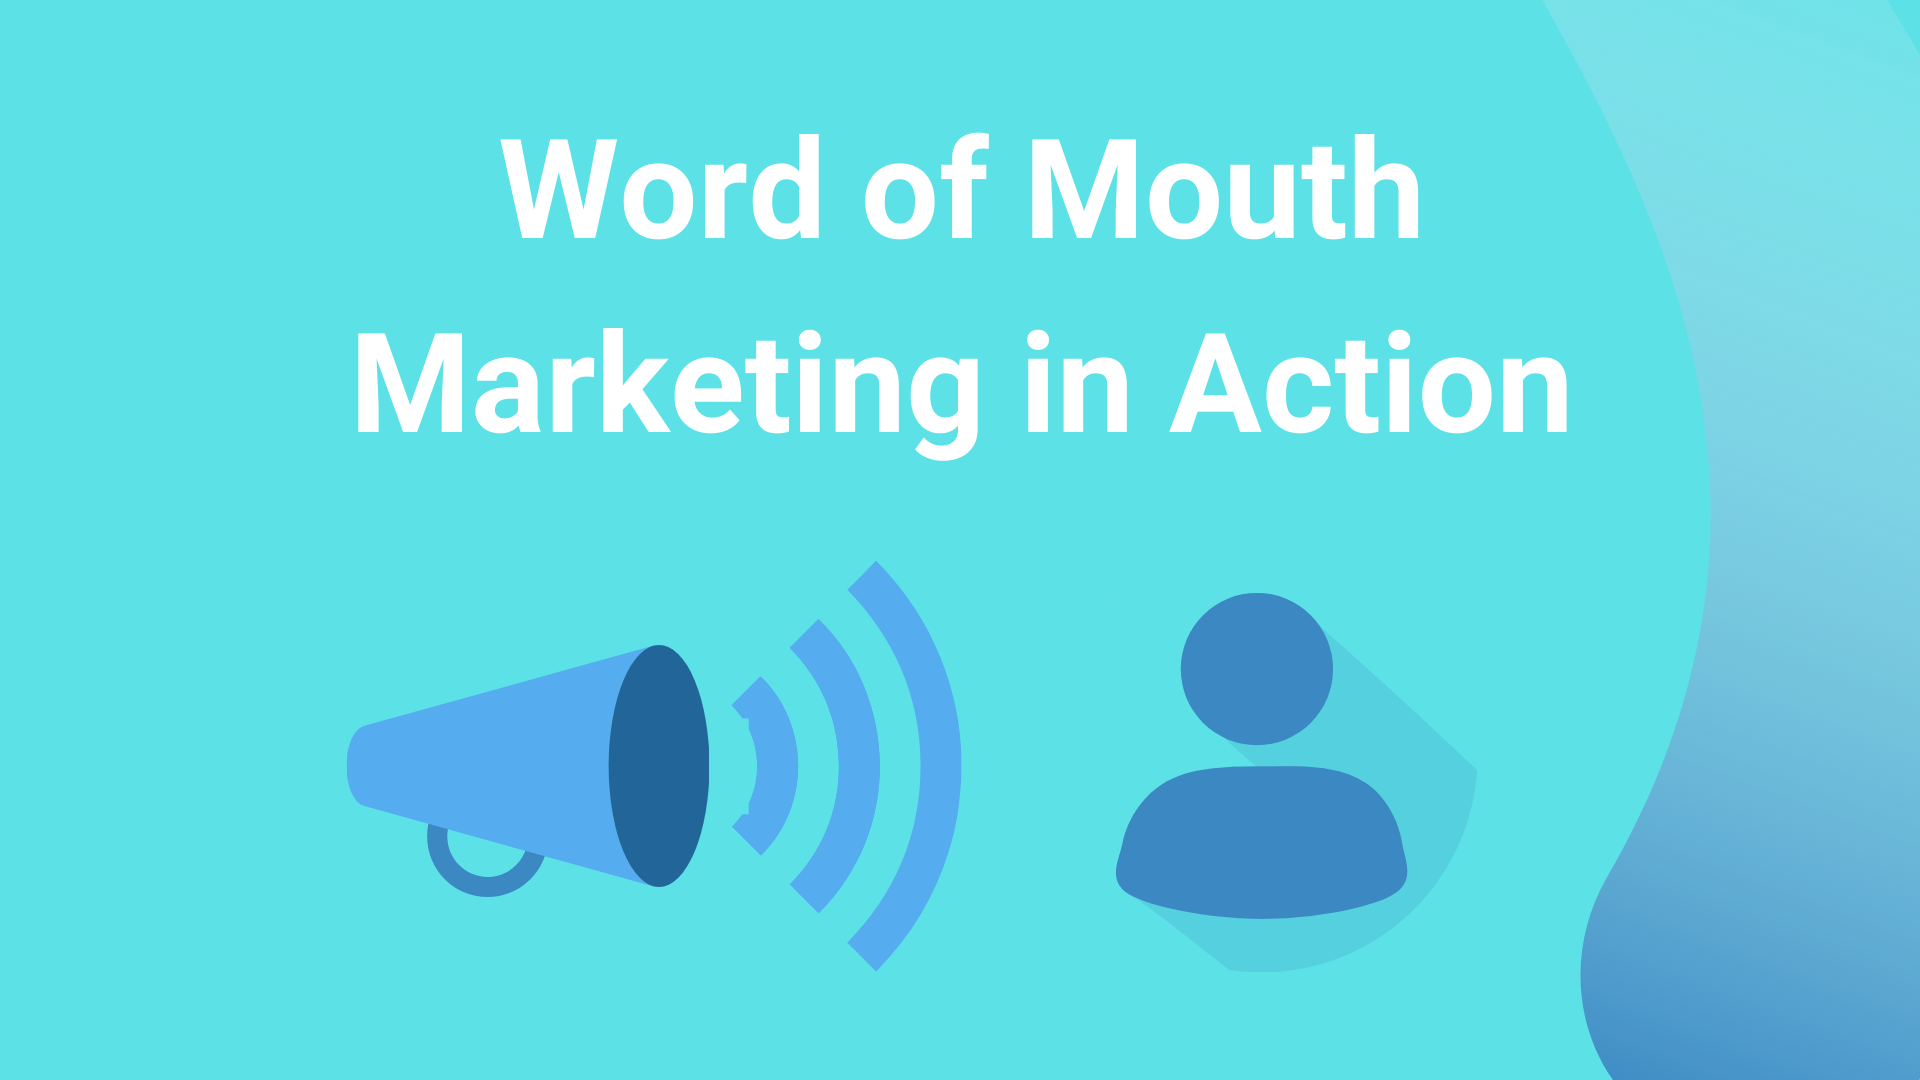 Word of Mouth Marketing Examples That Made All the Difference